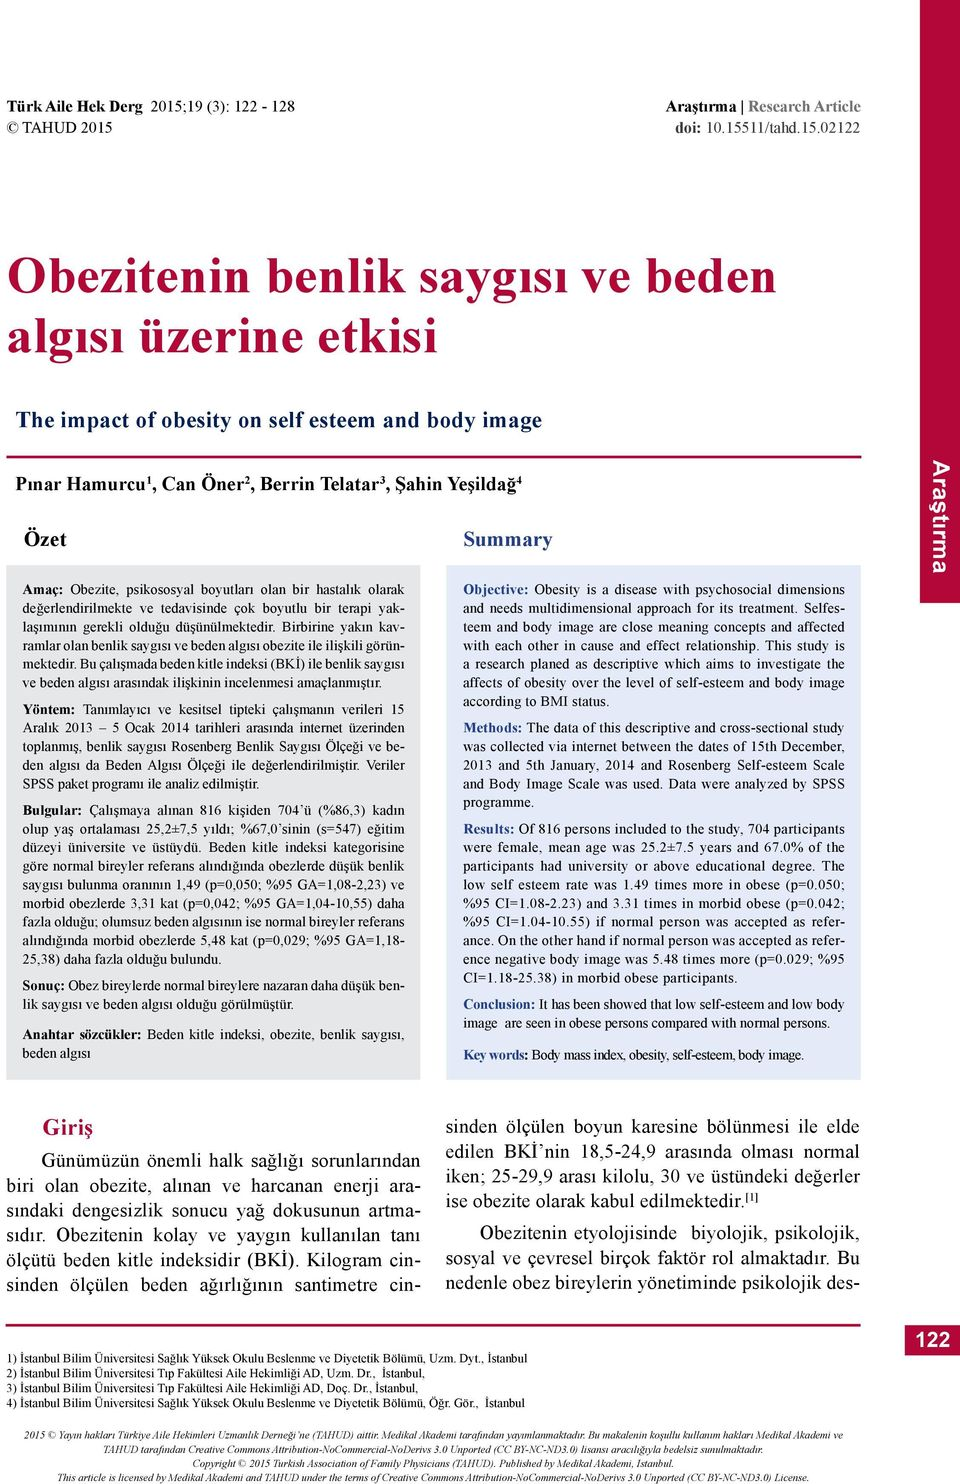 Araştırma Research Article doi: 0.55